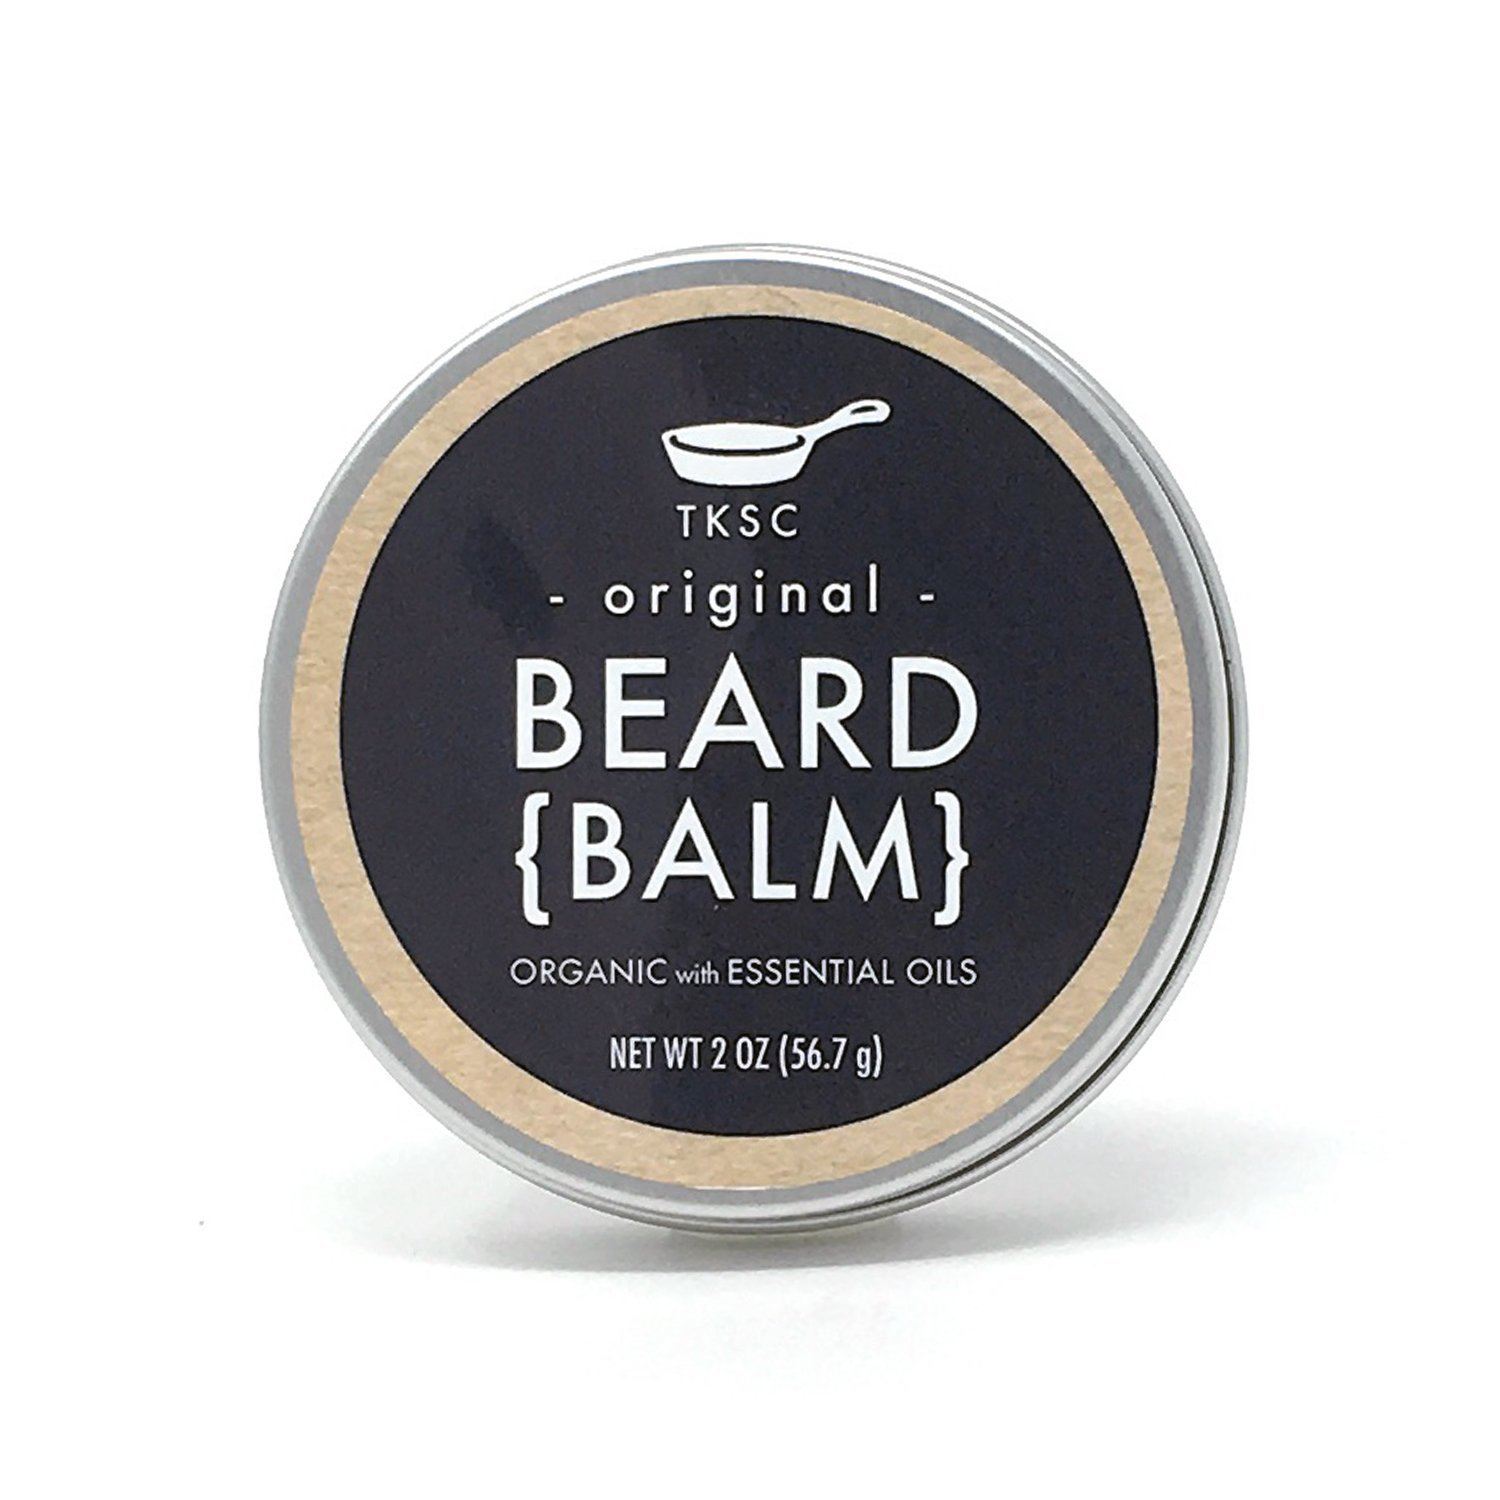 Organic Beard Balm - Original Scent (2 oz) - Handmade with All Natural Ingredients by Tiny Kitchen Soap Co.